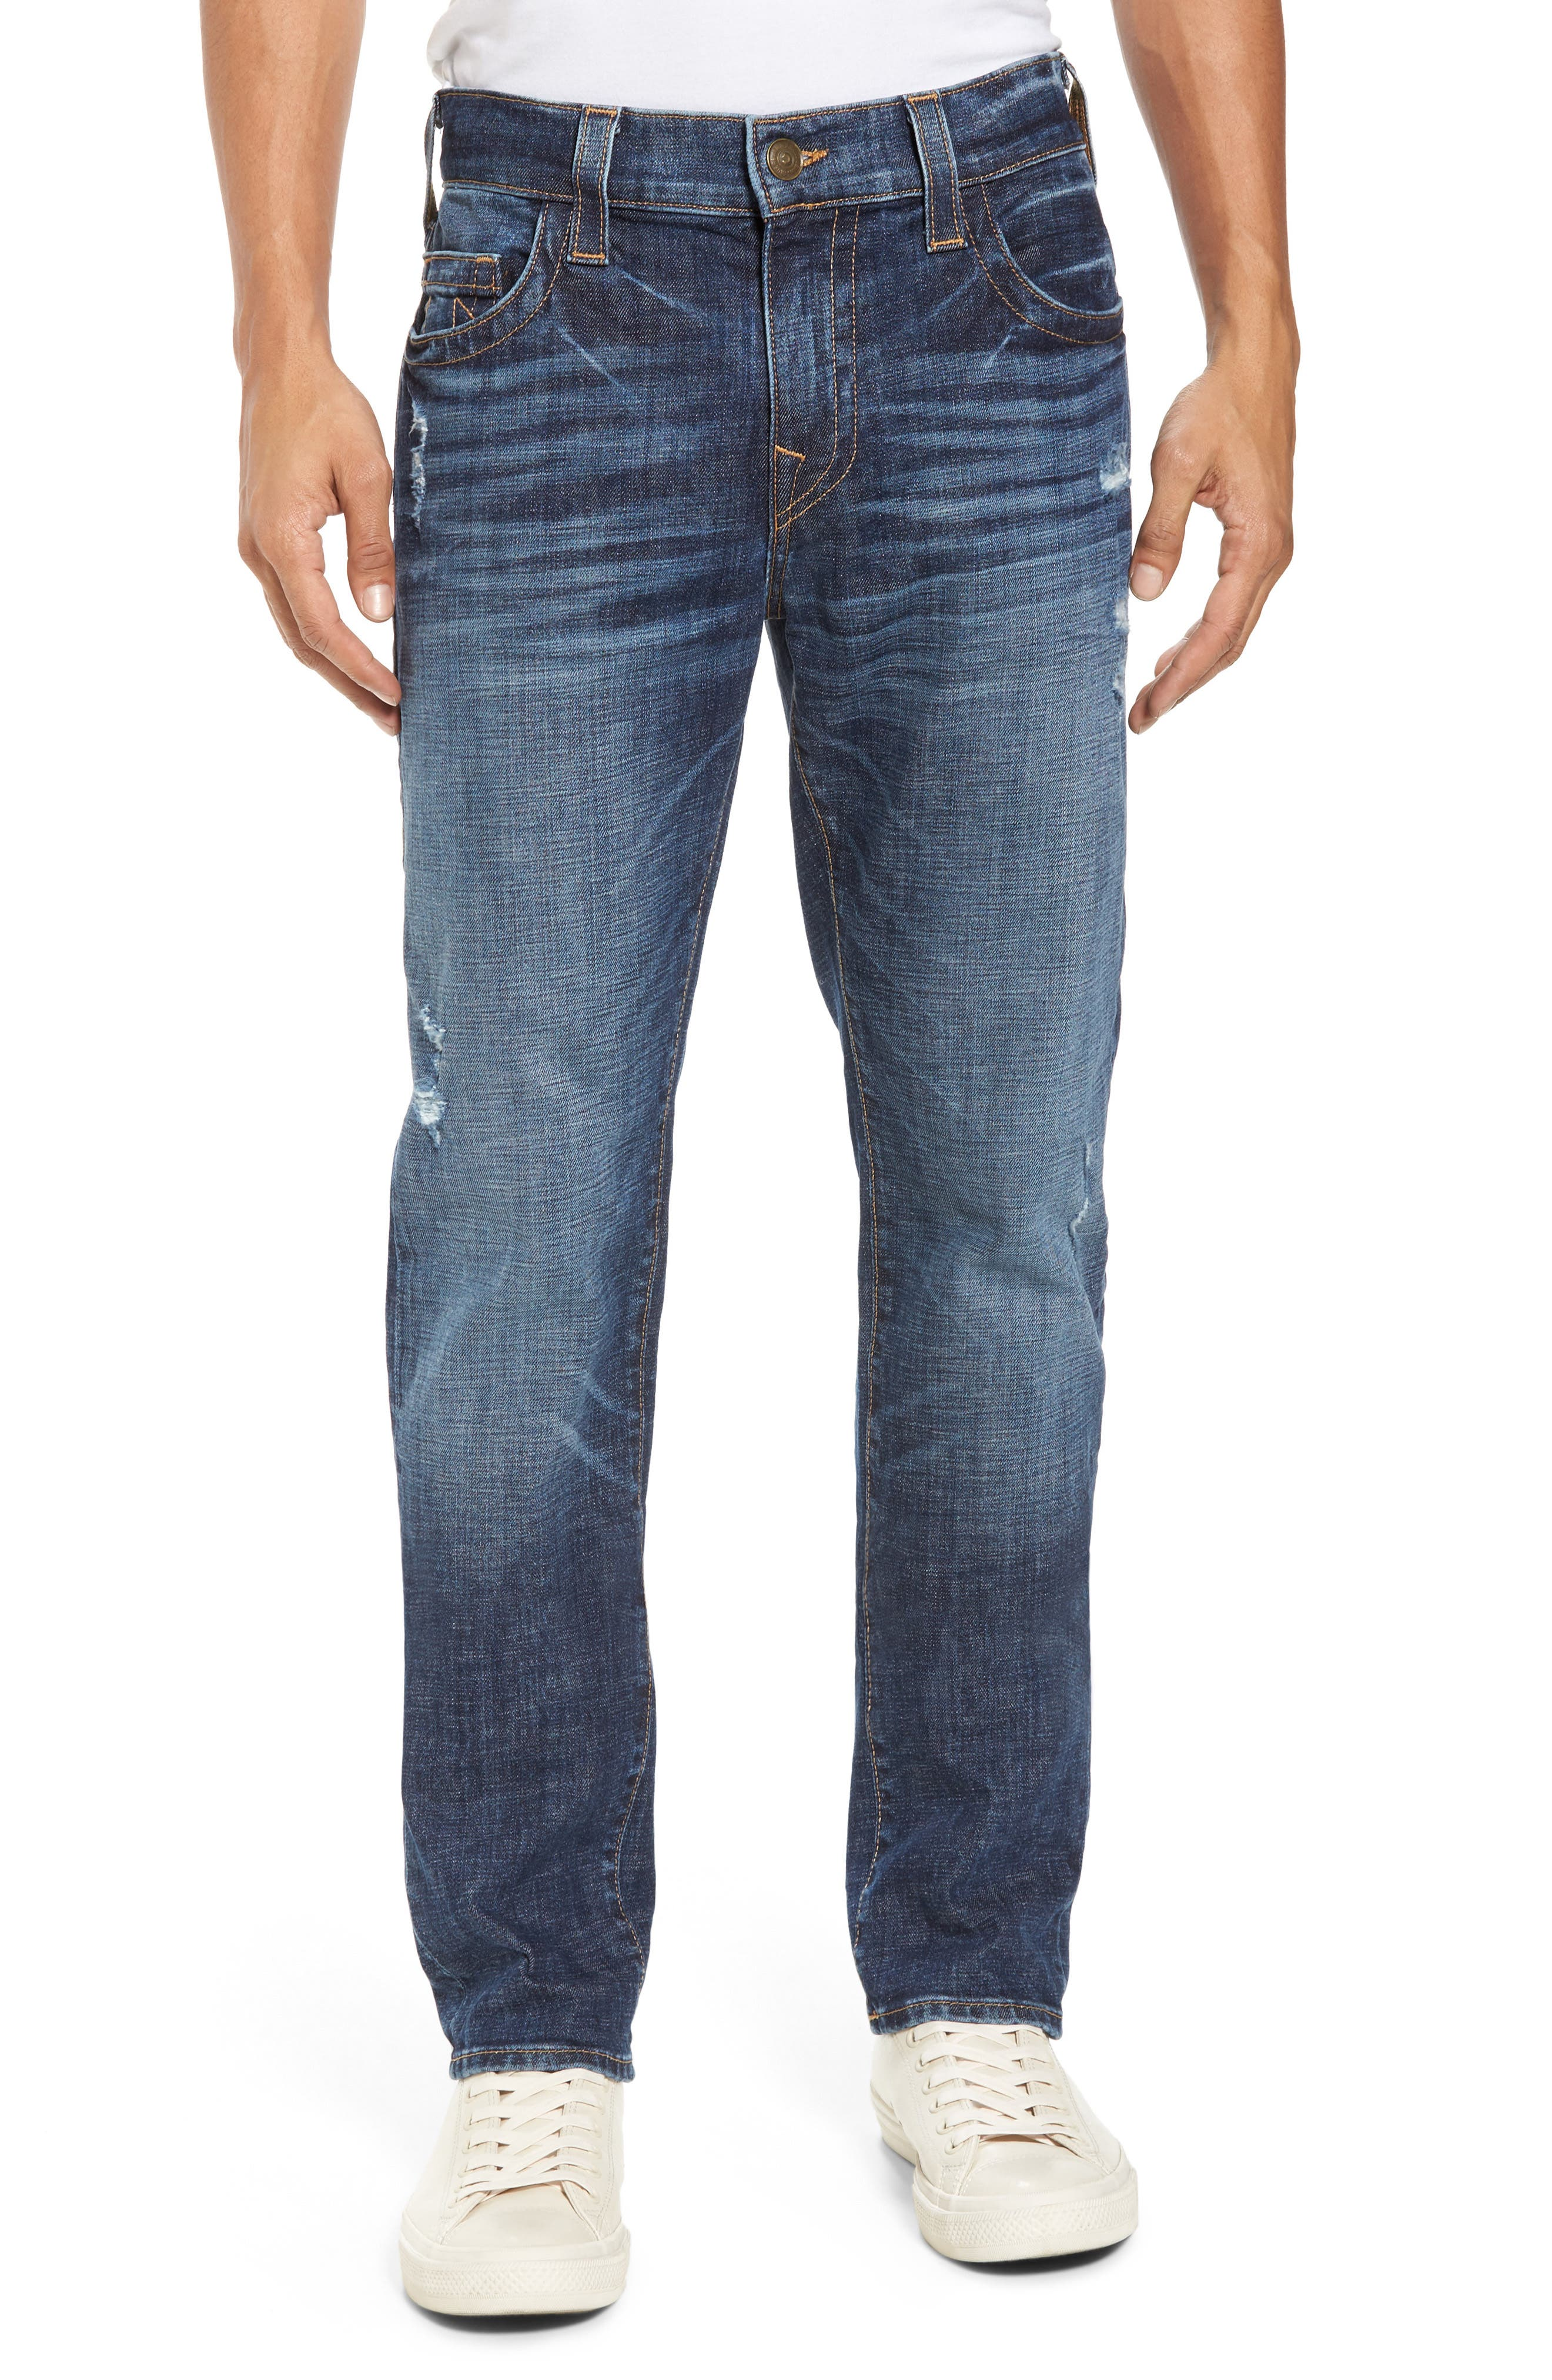 Rocco Skinny Fit Jeans,                         Main,                         color, Dark Wash